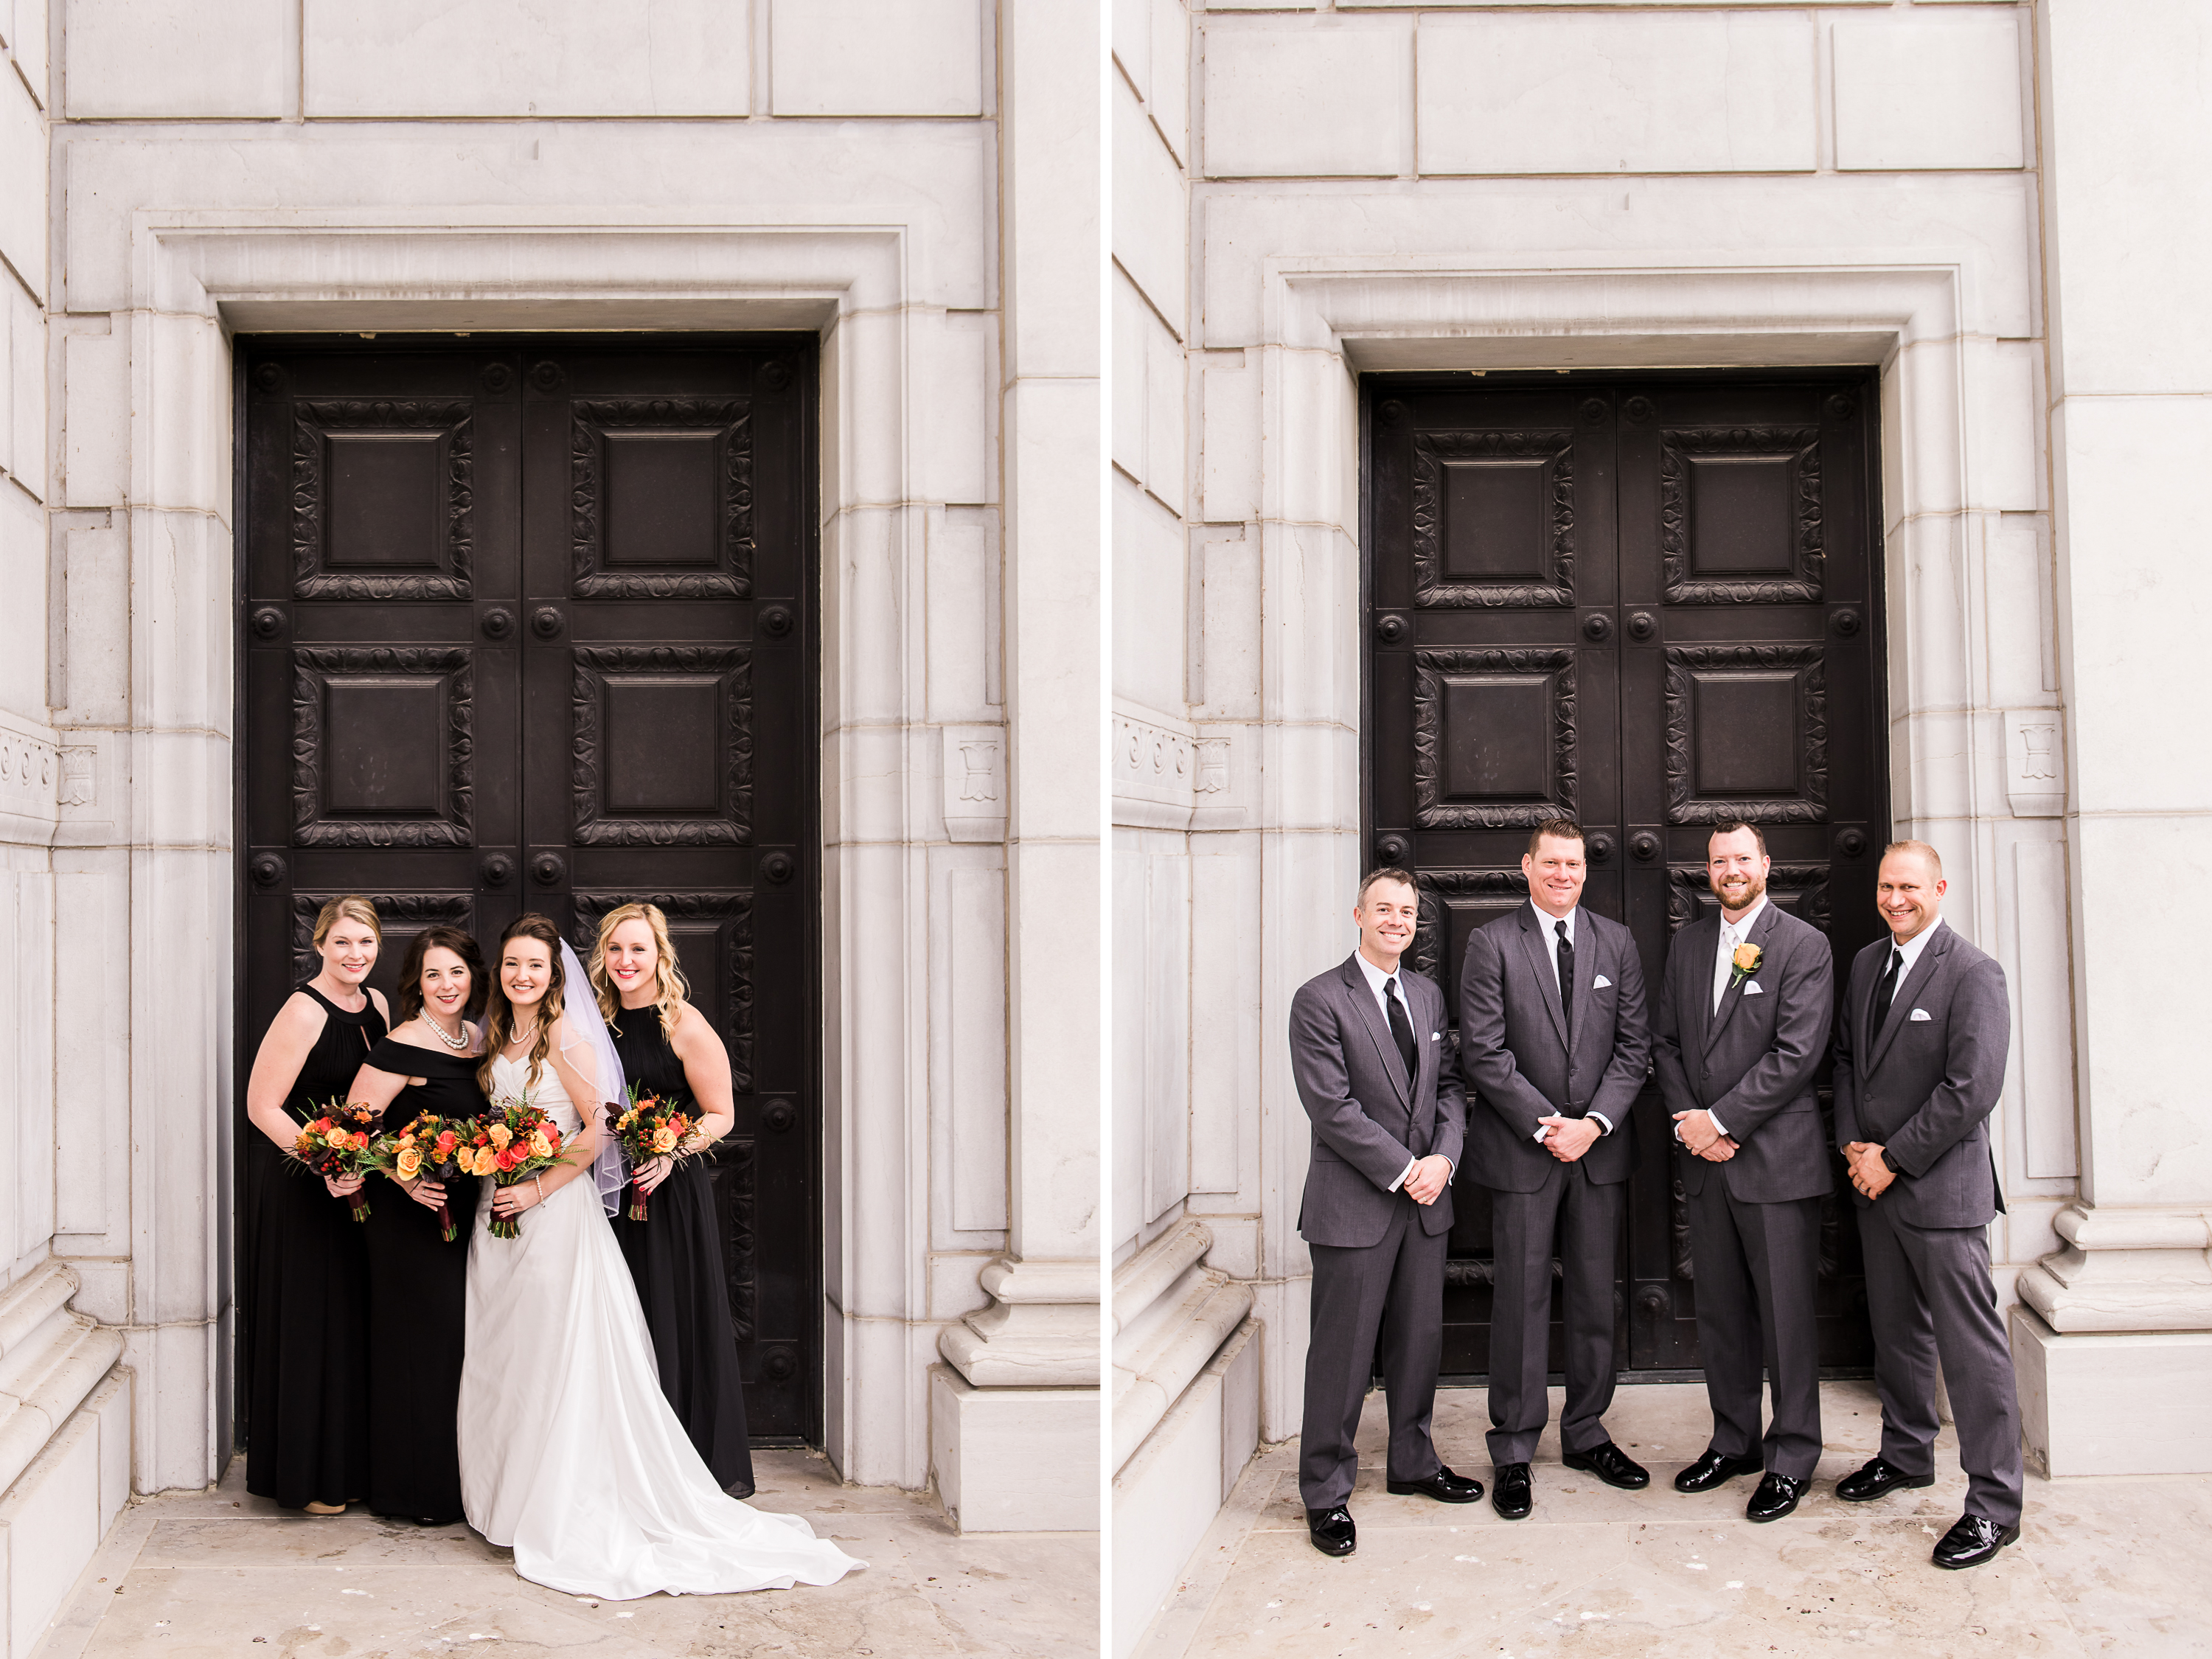 Bride-and-Groom-Portraits-Capitol-Jefferson-City-Missouri-Fall-Millbottom-Wedding-Morgan-Lee-Photography-Columbia-Missouri-Wedding-Photographer